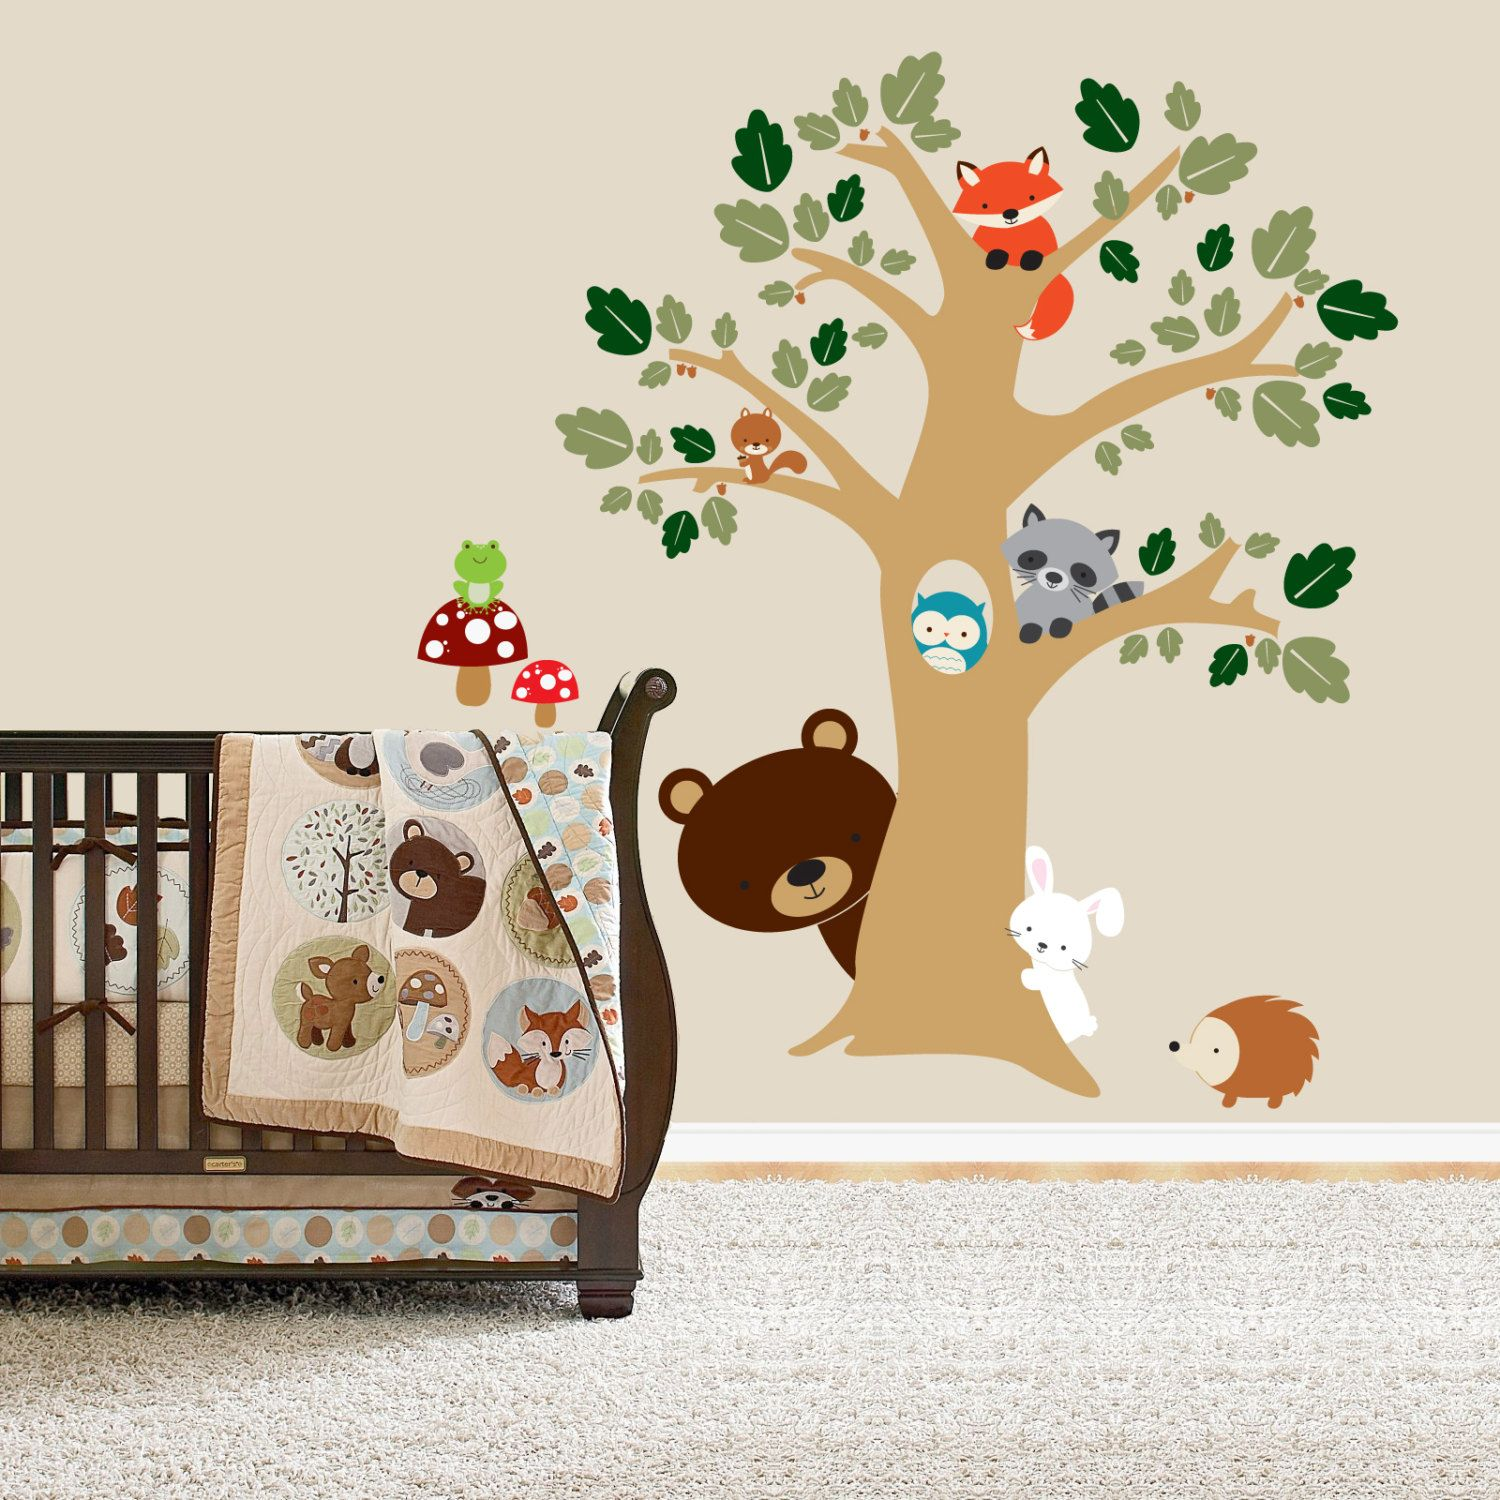 Forest Friends Room Peek a Boo Tree Woodland Animals Decal Nursery Wall Vinyl. $75.00 via Etsy.  sc 1 st  Pinterest : forest animals nursery wall decals - www.pureclipart.com